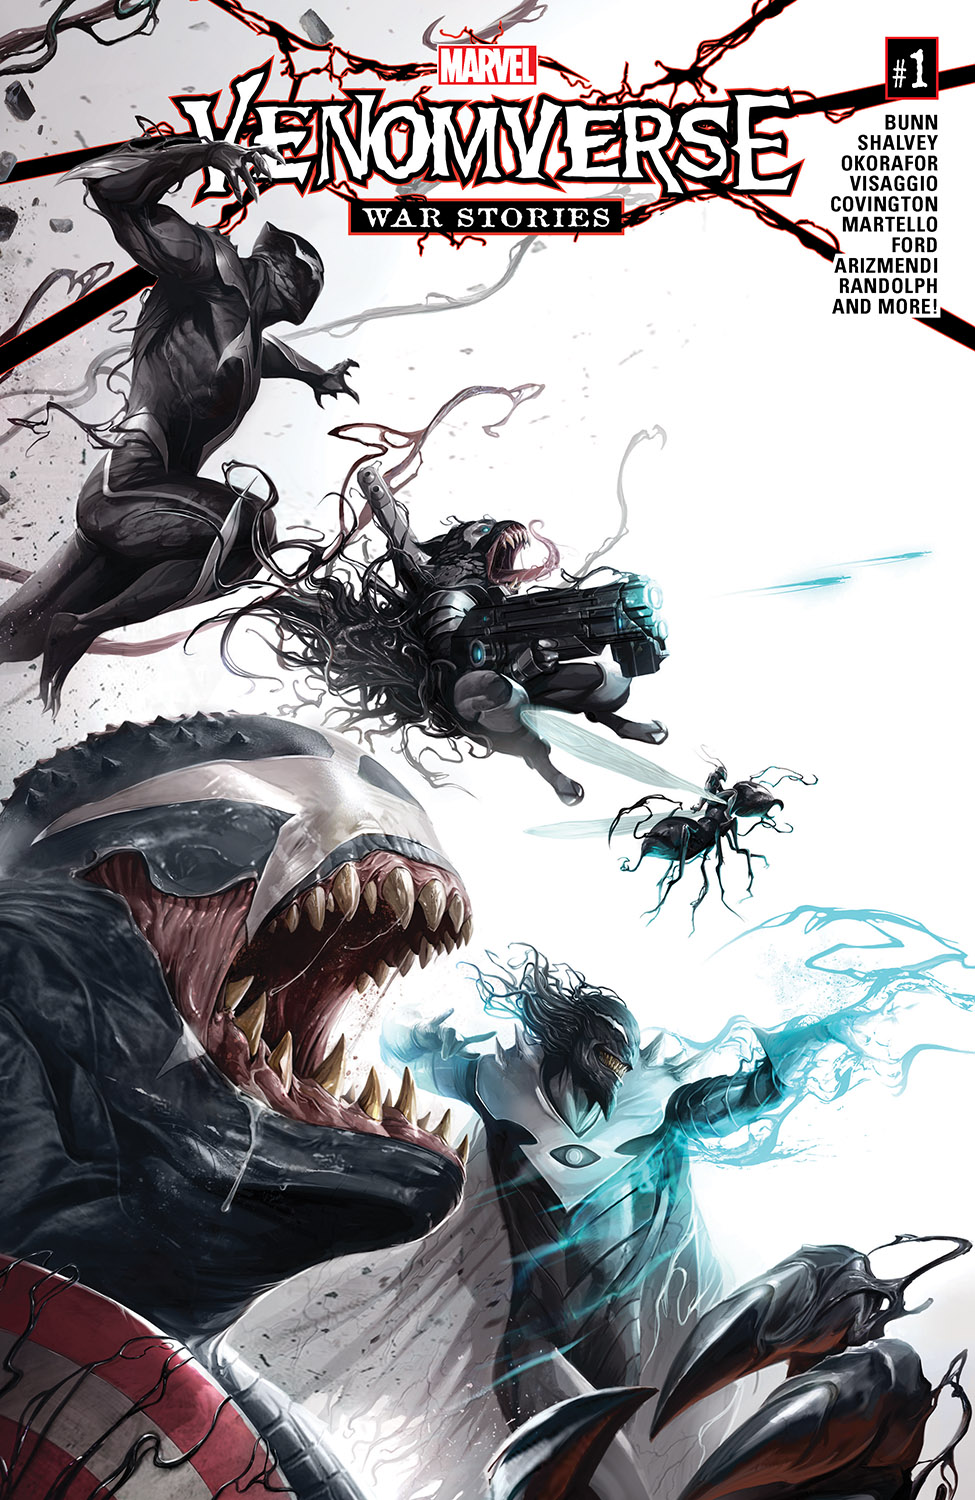 Venomverse: War Stories (2017) #1